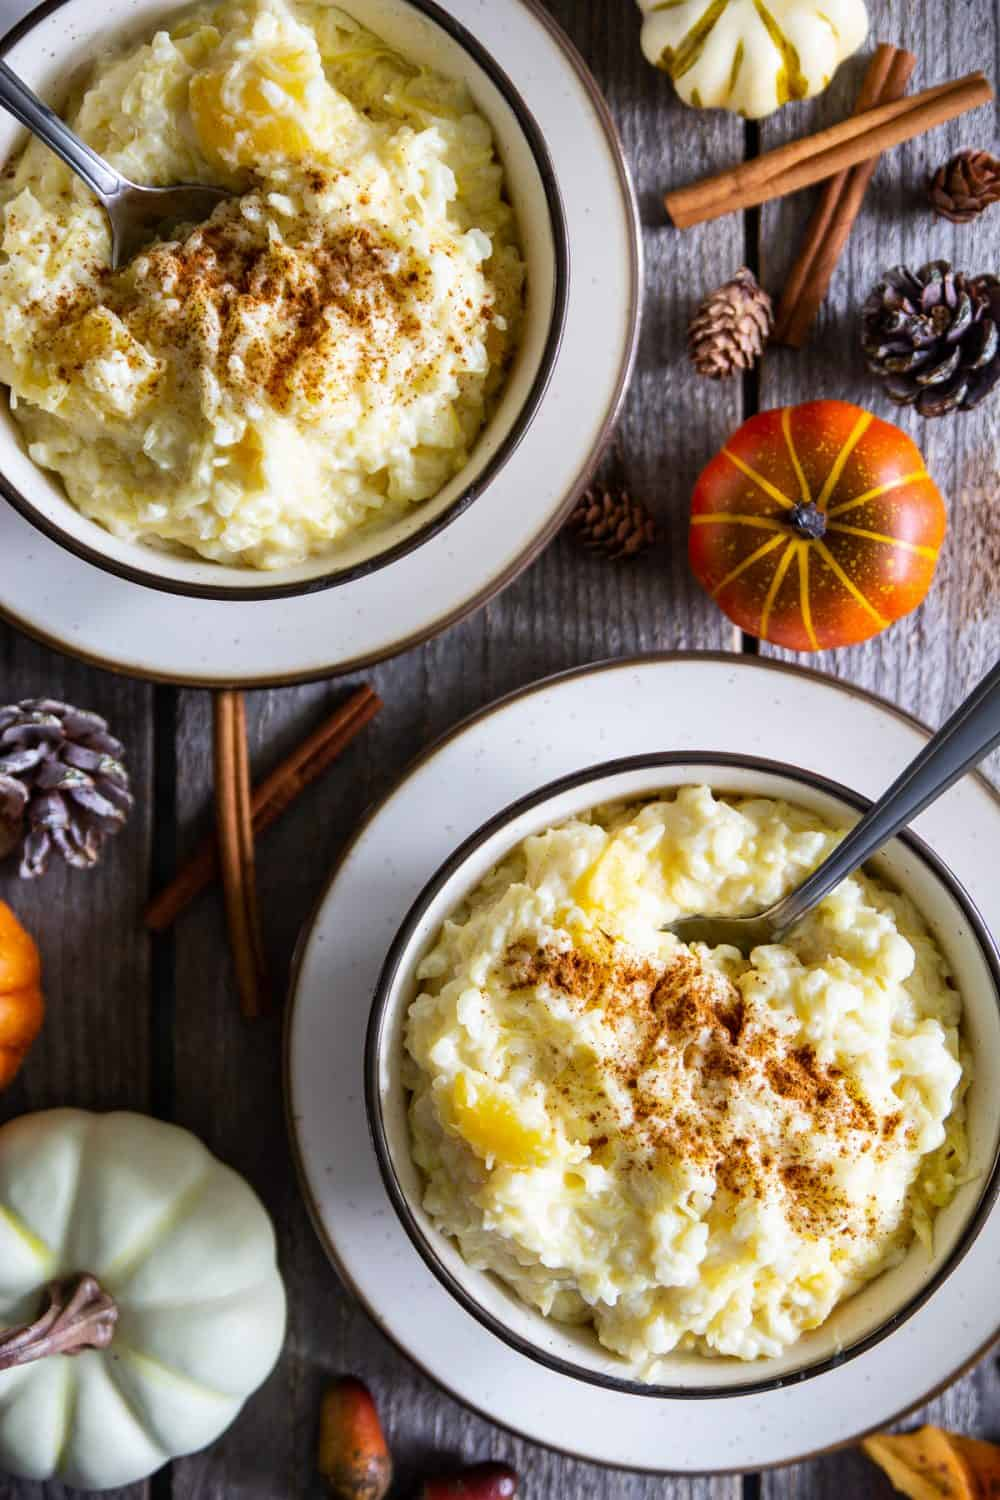 an overhead image of two bowls of rice pudding with cinnamon sticks and mini pumpkin beside them on a dark wooden background